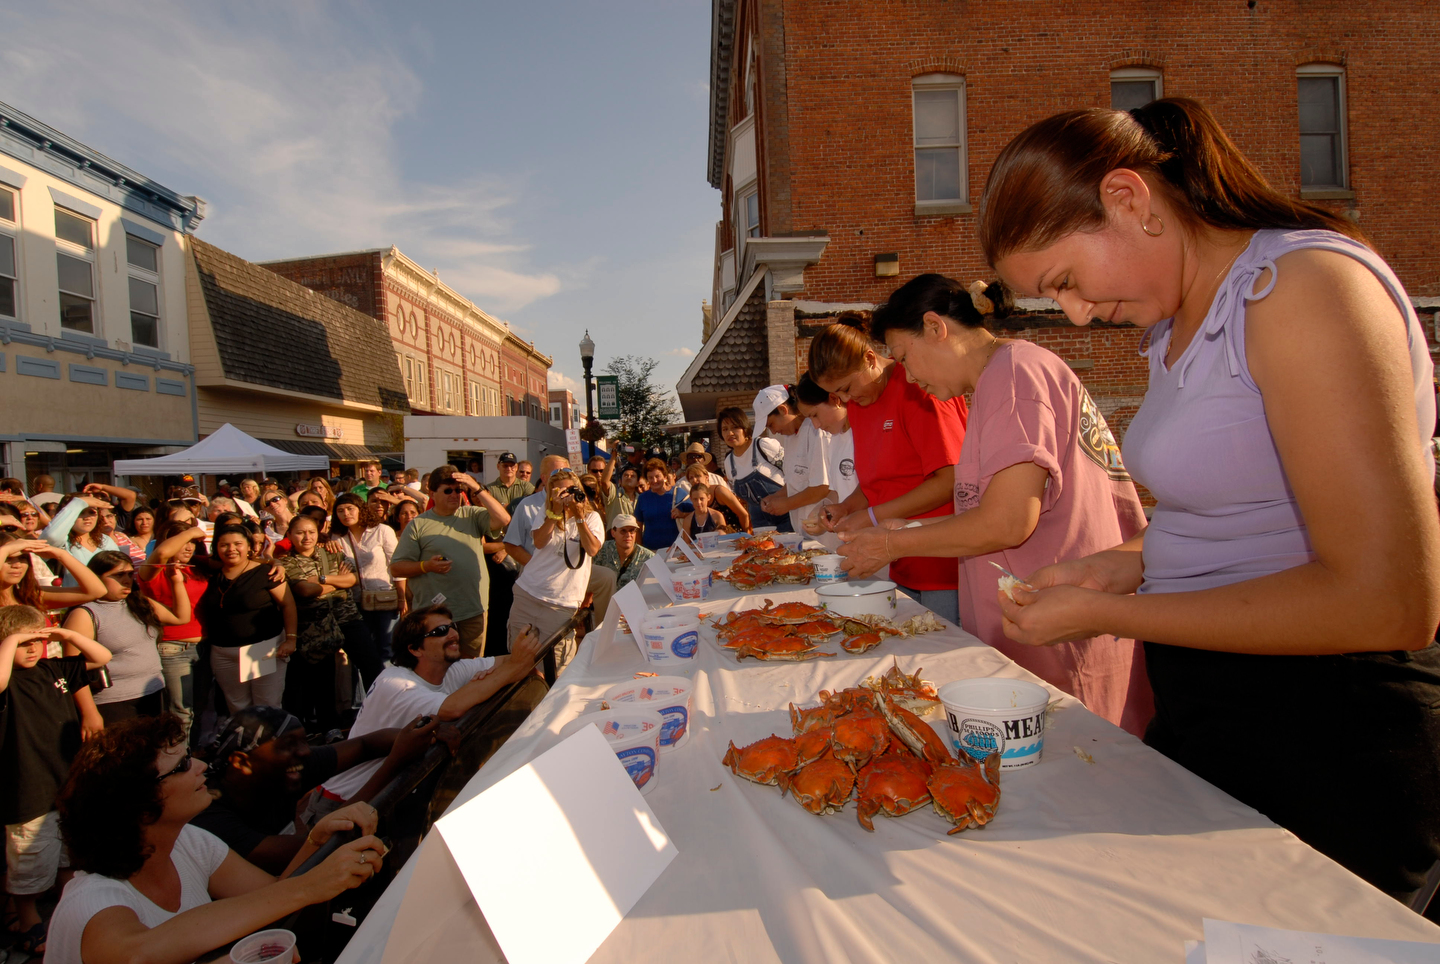 A crab picking contest on Race Street in Cambridge. Photo from The Packing House.